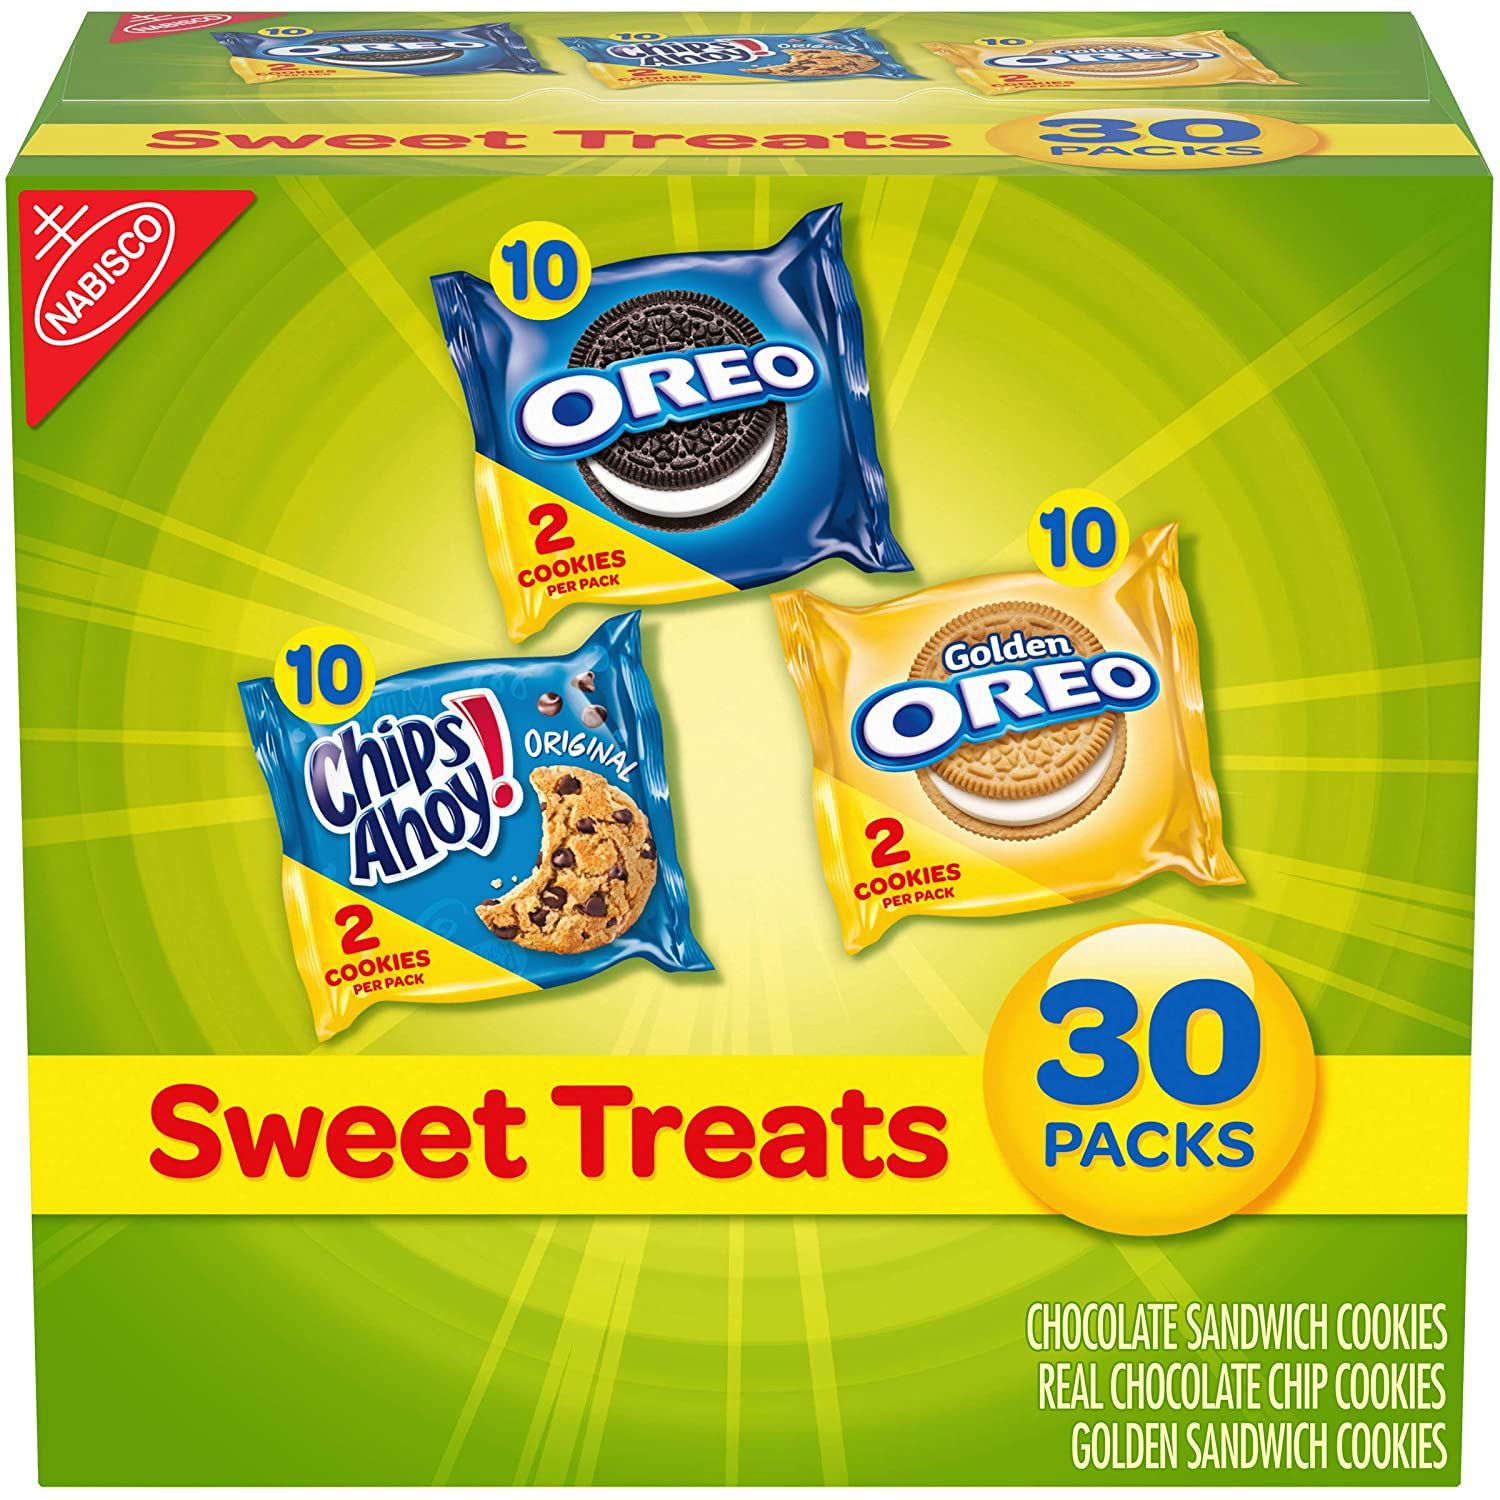 Nabisco Sweet Treats Cookie Variety Pack OREO, OREO Golden & CHIPS AHOY, 30 Snack Packs